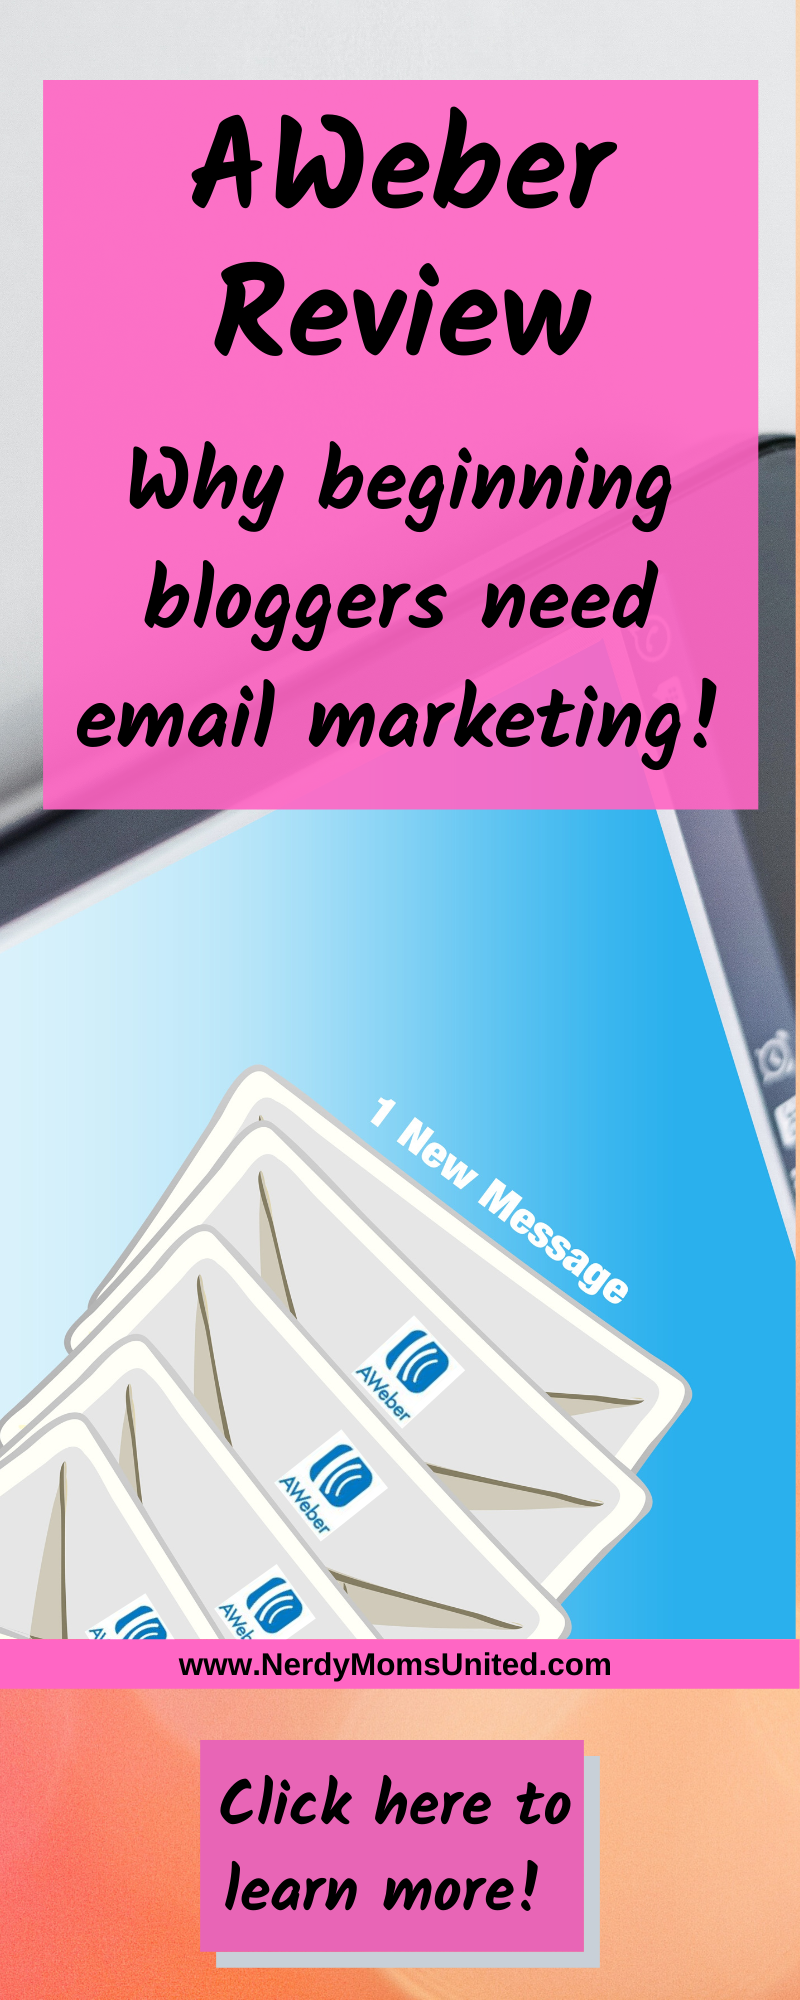 Buy Aweber Email Marketing Online Voucher Code Printable 10